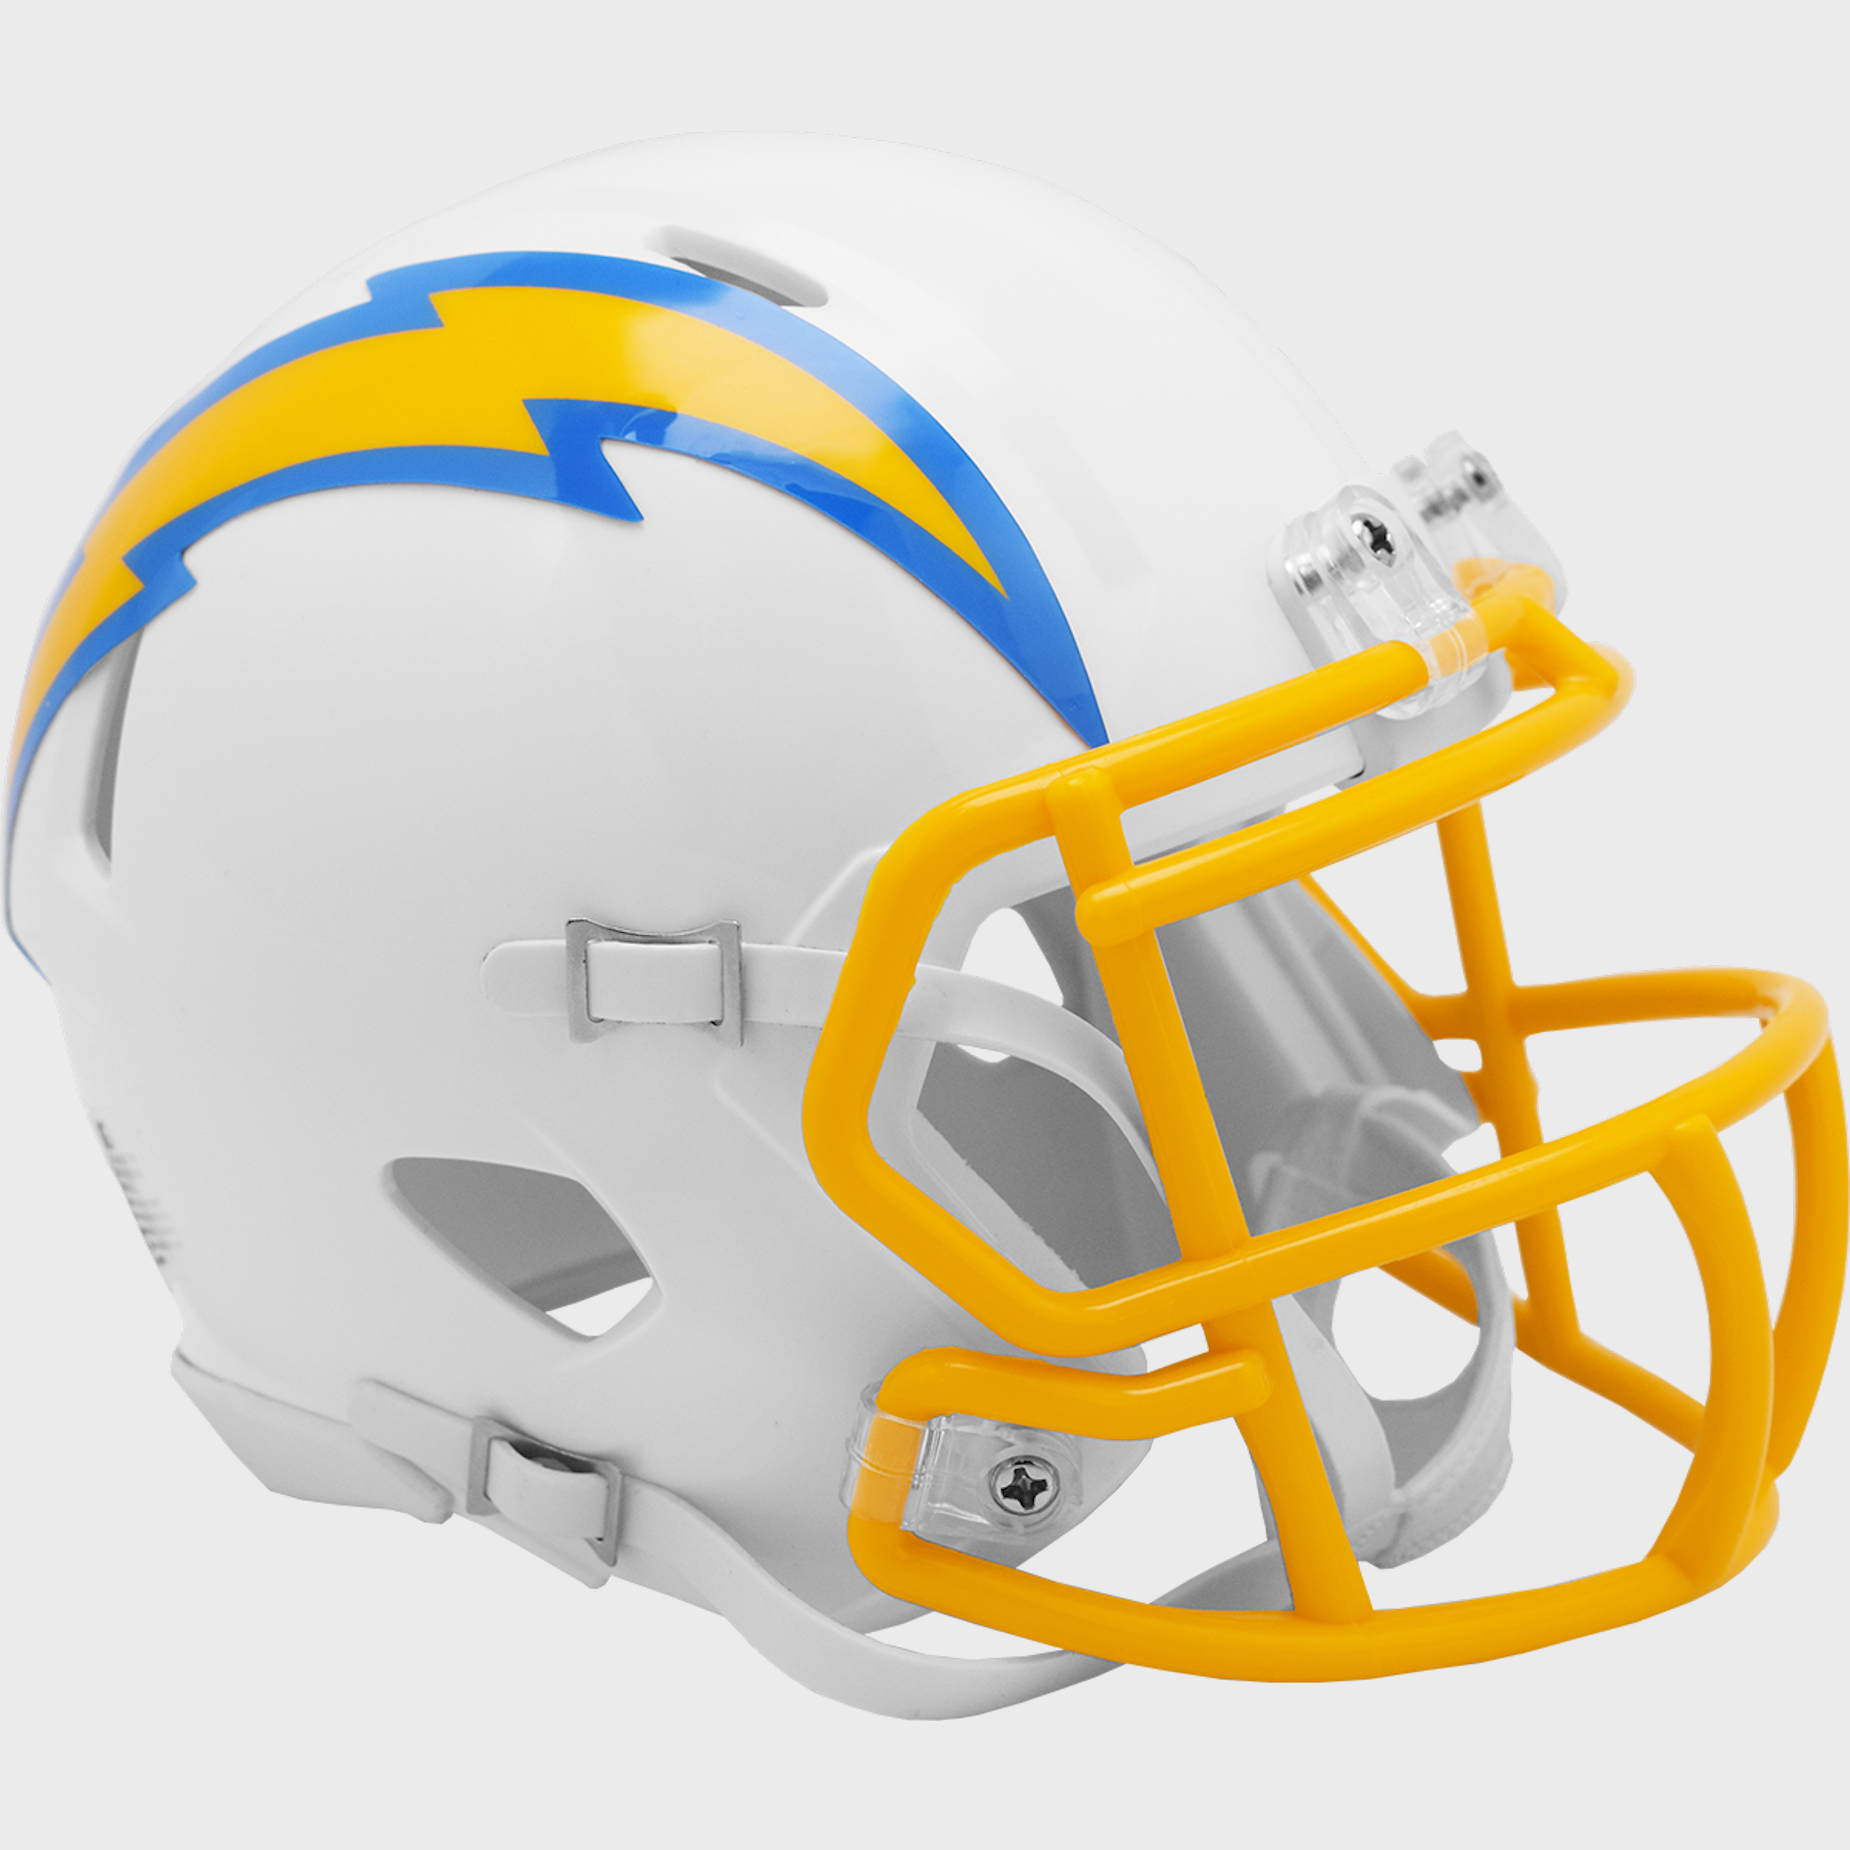 Los Angeles Chargers NFL Mini Speed Football Helmet <B>NEW 2020</B>